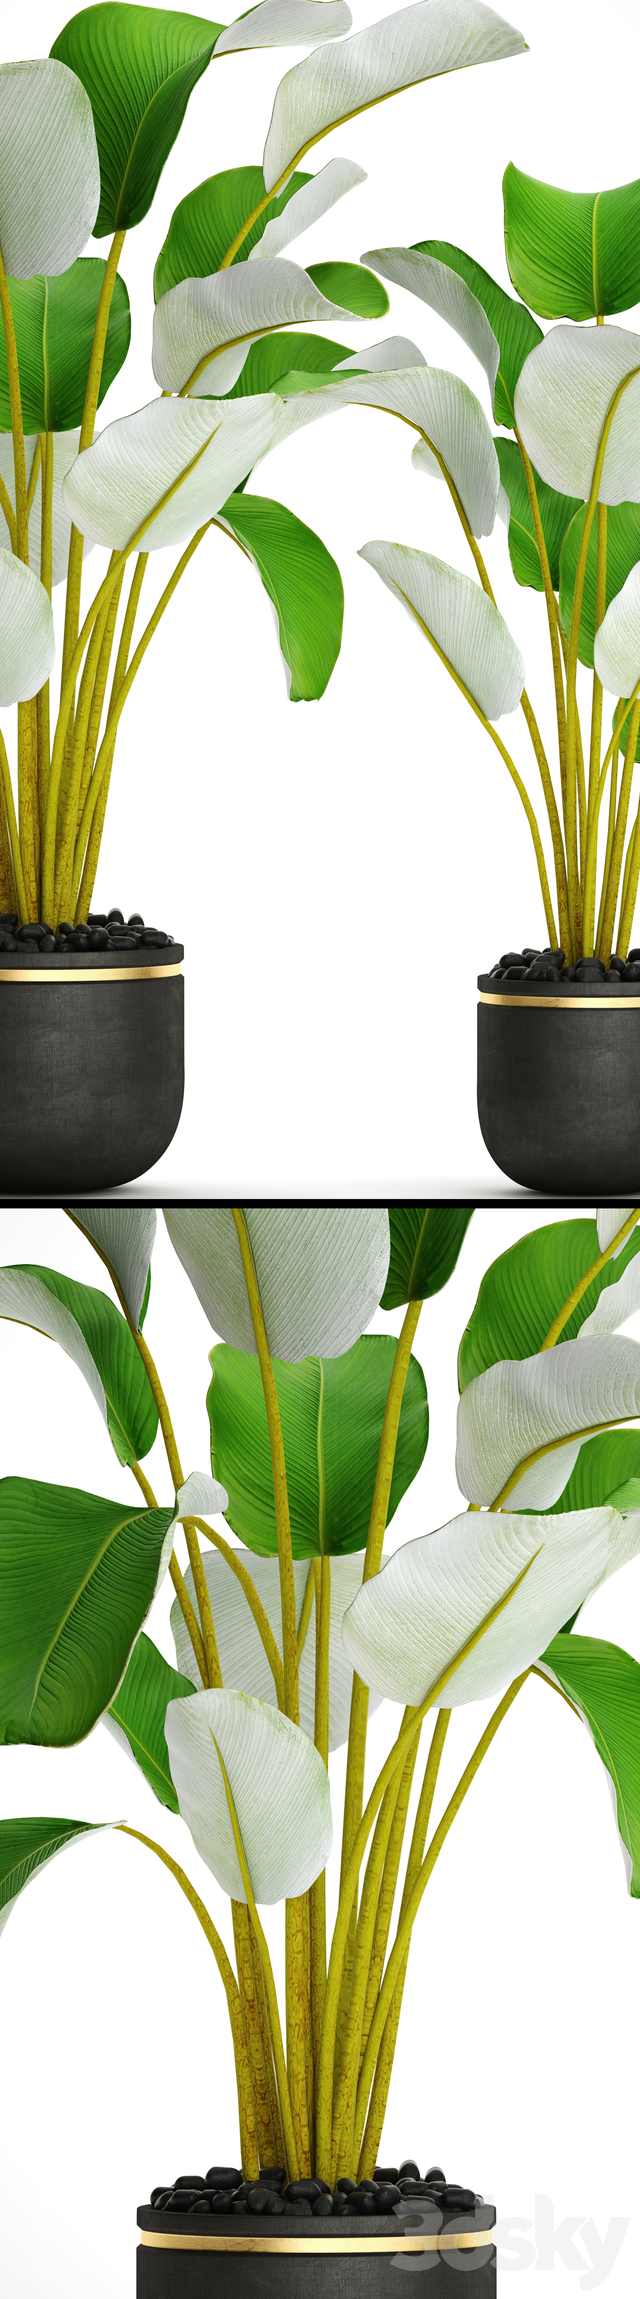 Collection of plants in pots 31